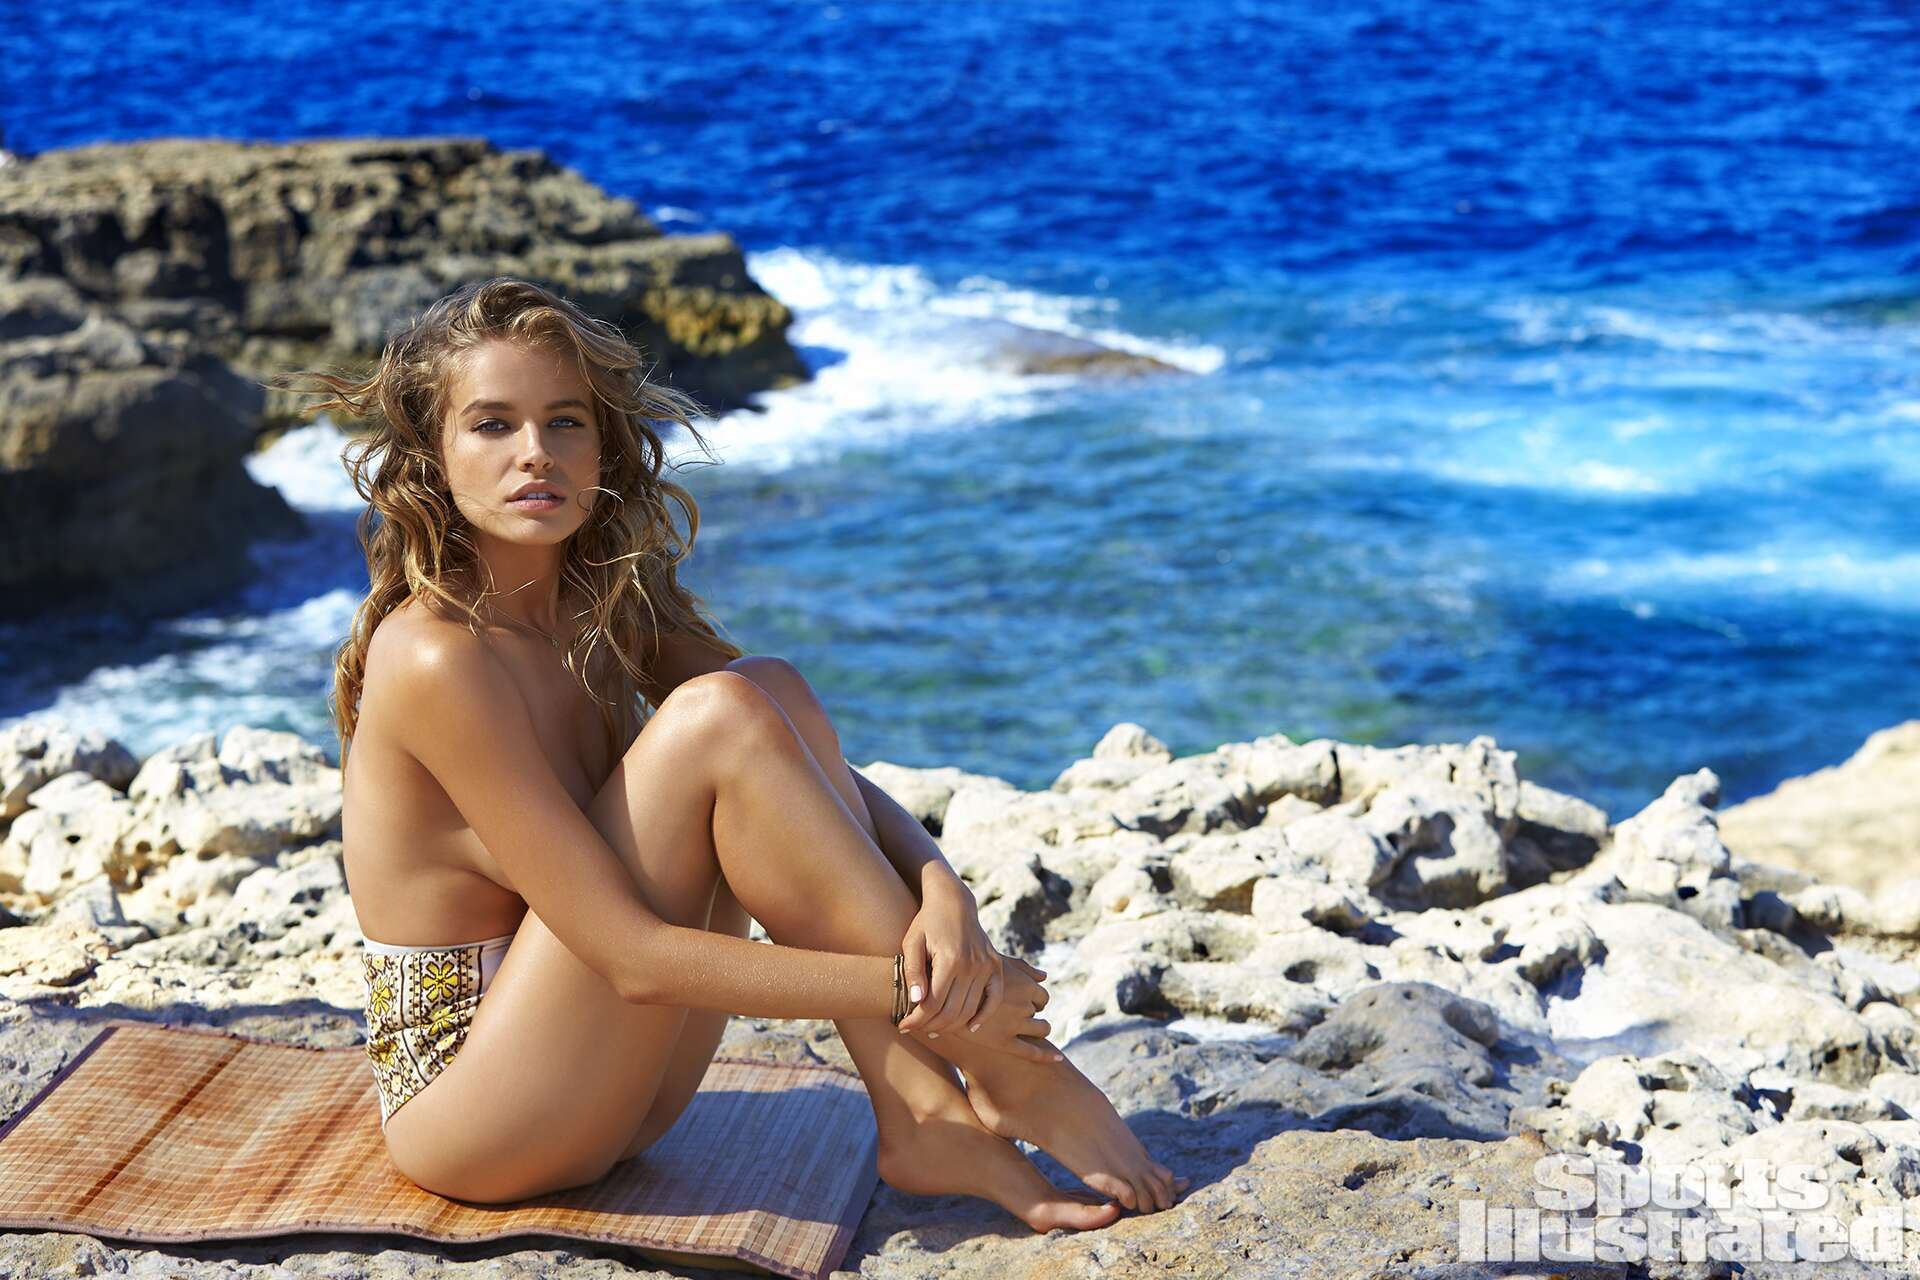 Tanya Mityushina was photographed by Ben Watts in Malta. Swimsuit by Pacific And Driftwood.